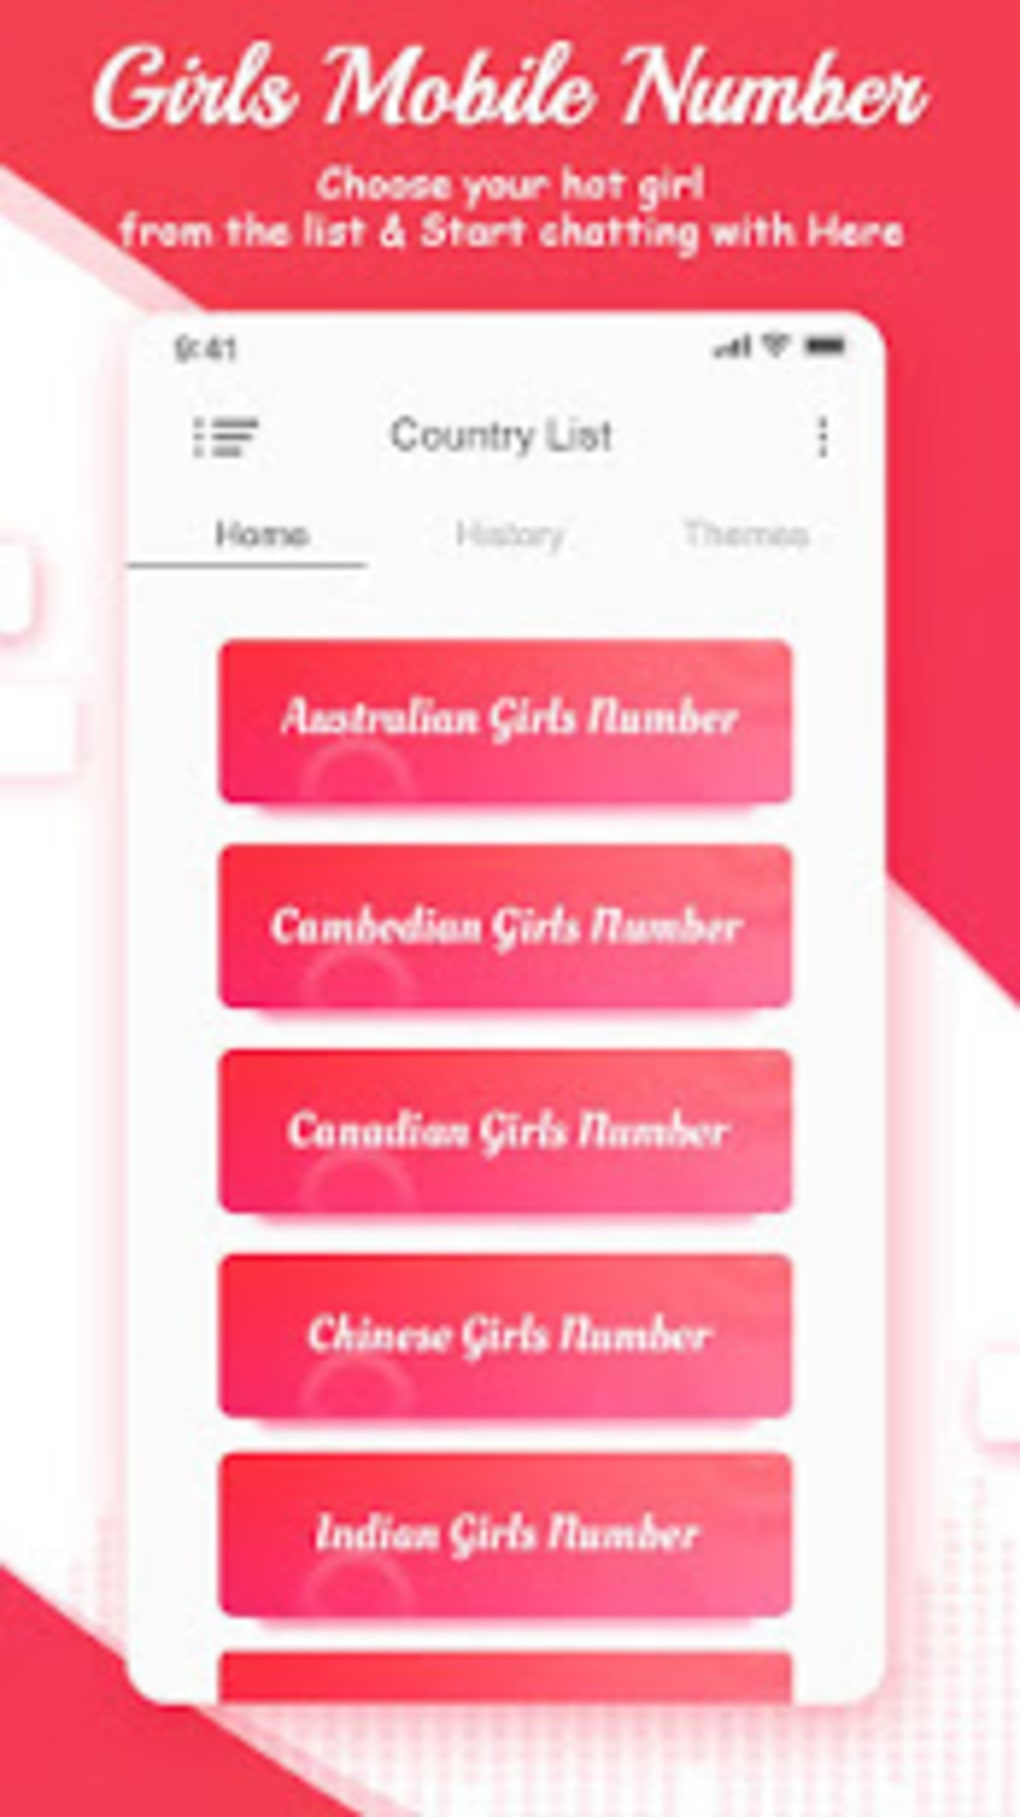 Girl Friend Search - Girls Mobile Number for Android - Download